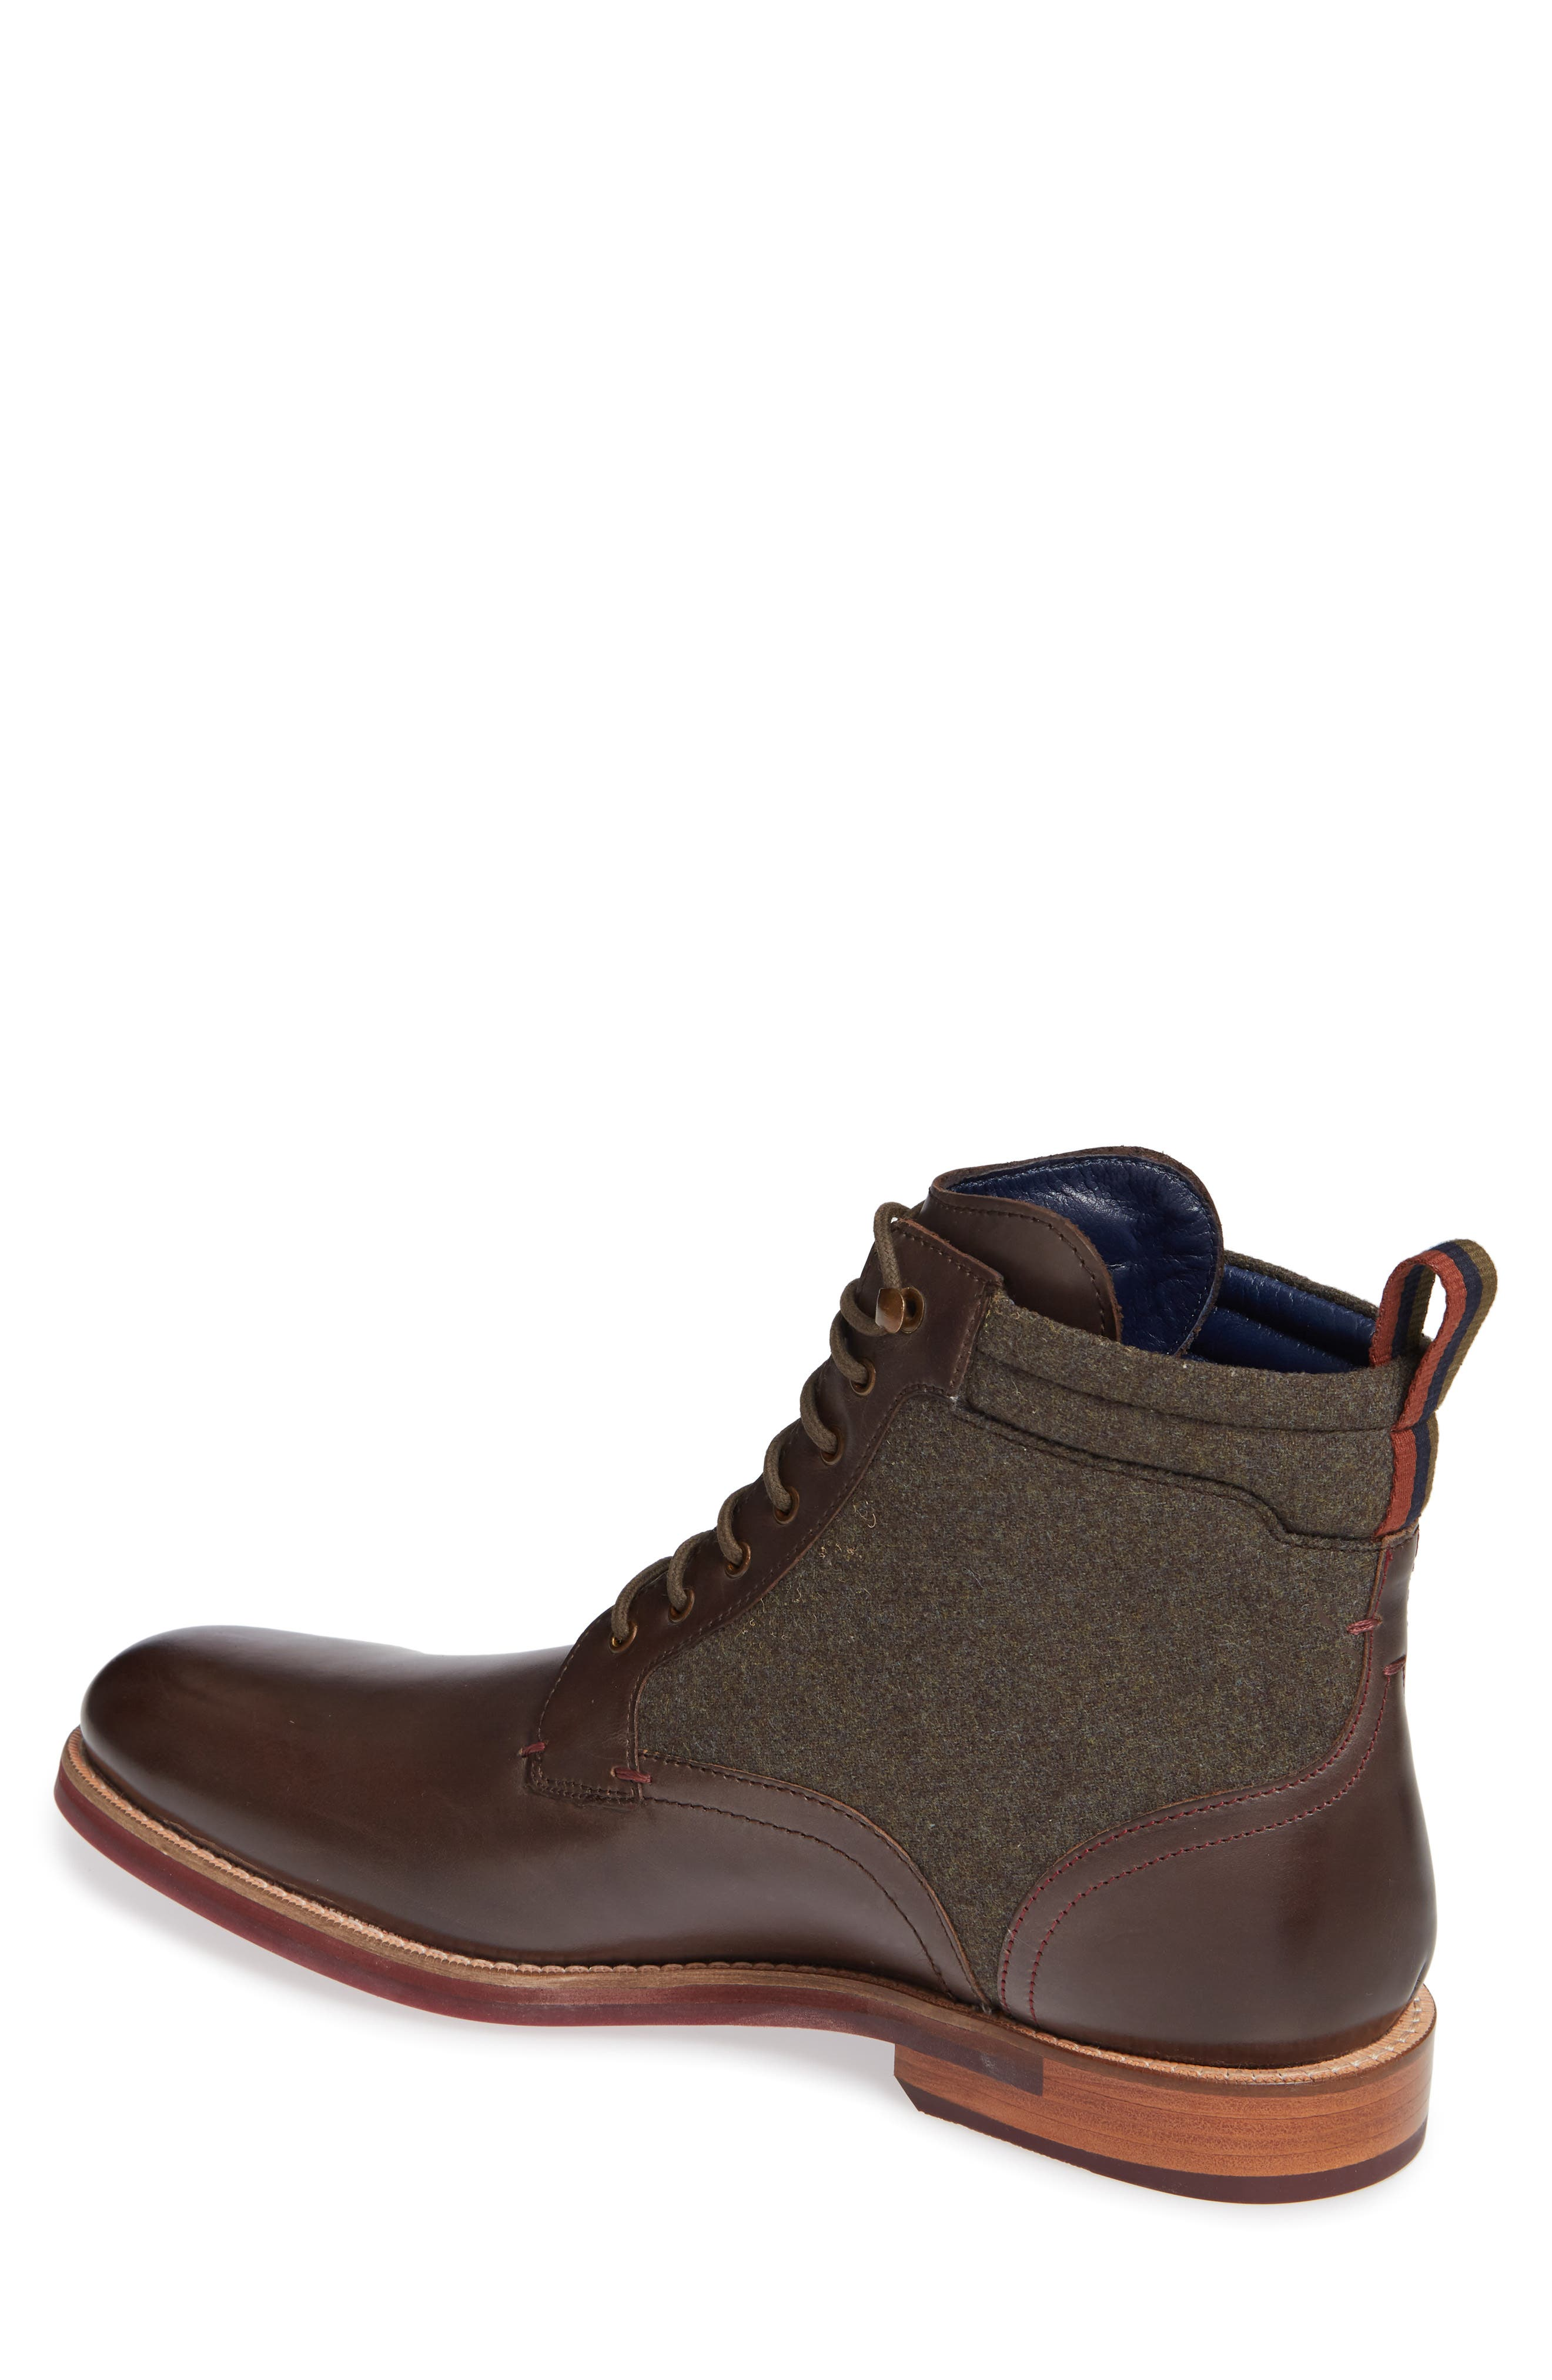 Axtoni Boot,                             Alternate thumbnail 2, color,                             BROWN LEATHER